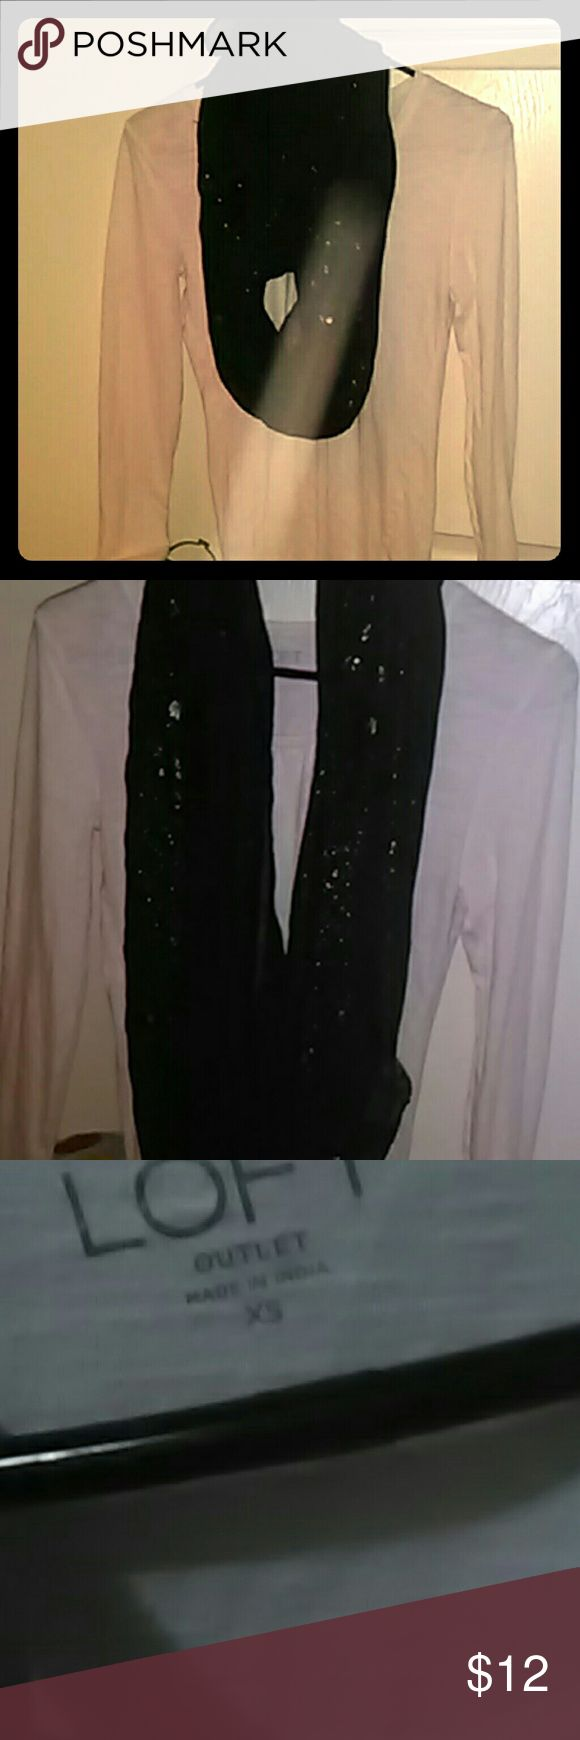 """Nwt loft shirt charolette rouse scarf. They compliment  one another and can be used to make over 50 """"looks"""" together or separate. Shirt is NWOT as well as the gold flaked infinity scarf charolette rouse Tops"""